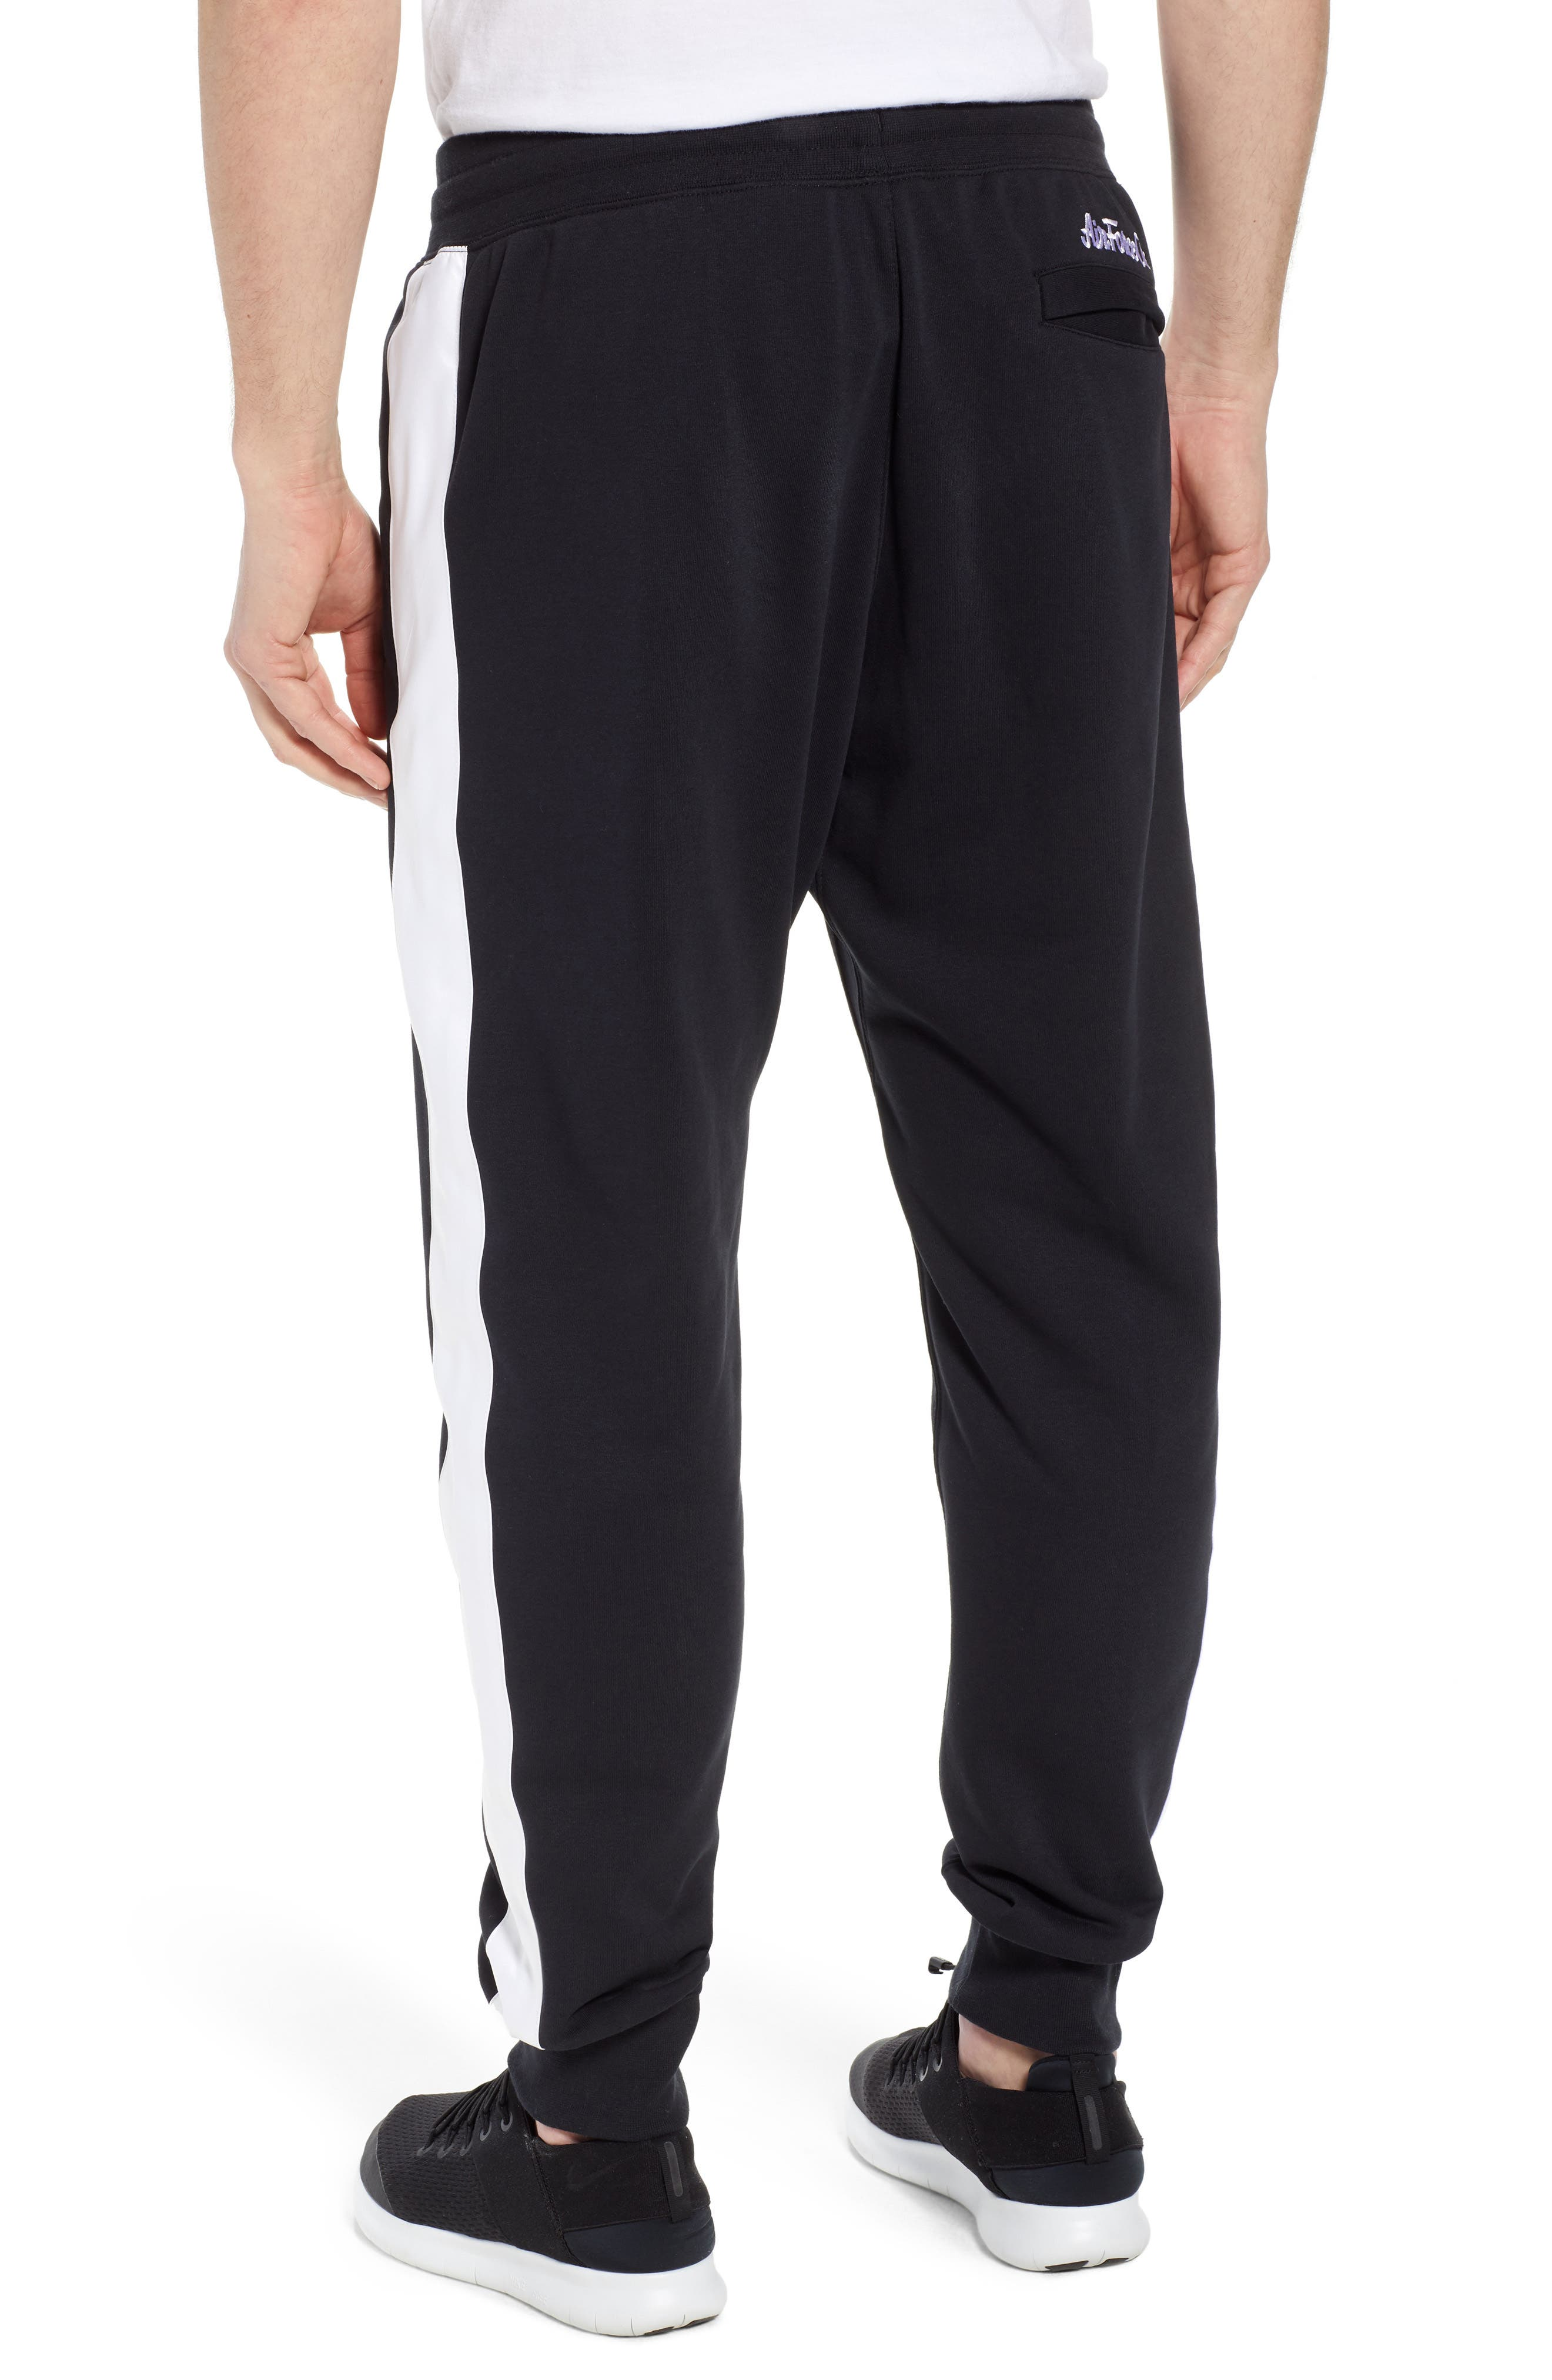 Air Force One Track Pants,                             Alternate thumbnail 2, color,                             010